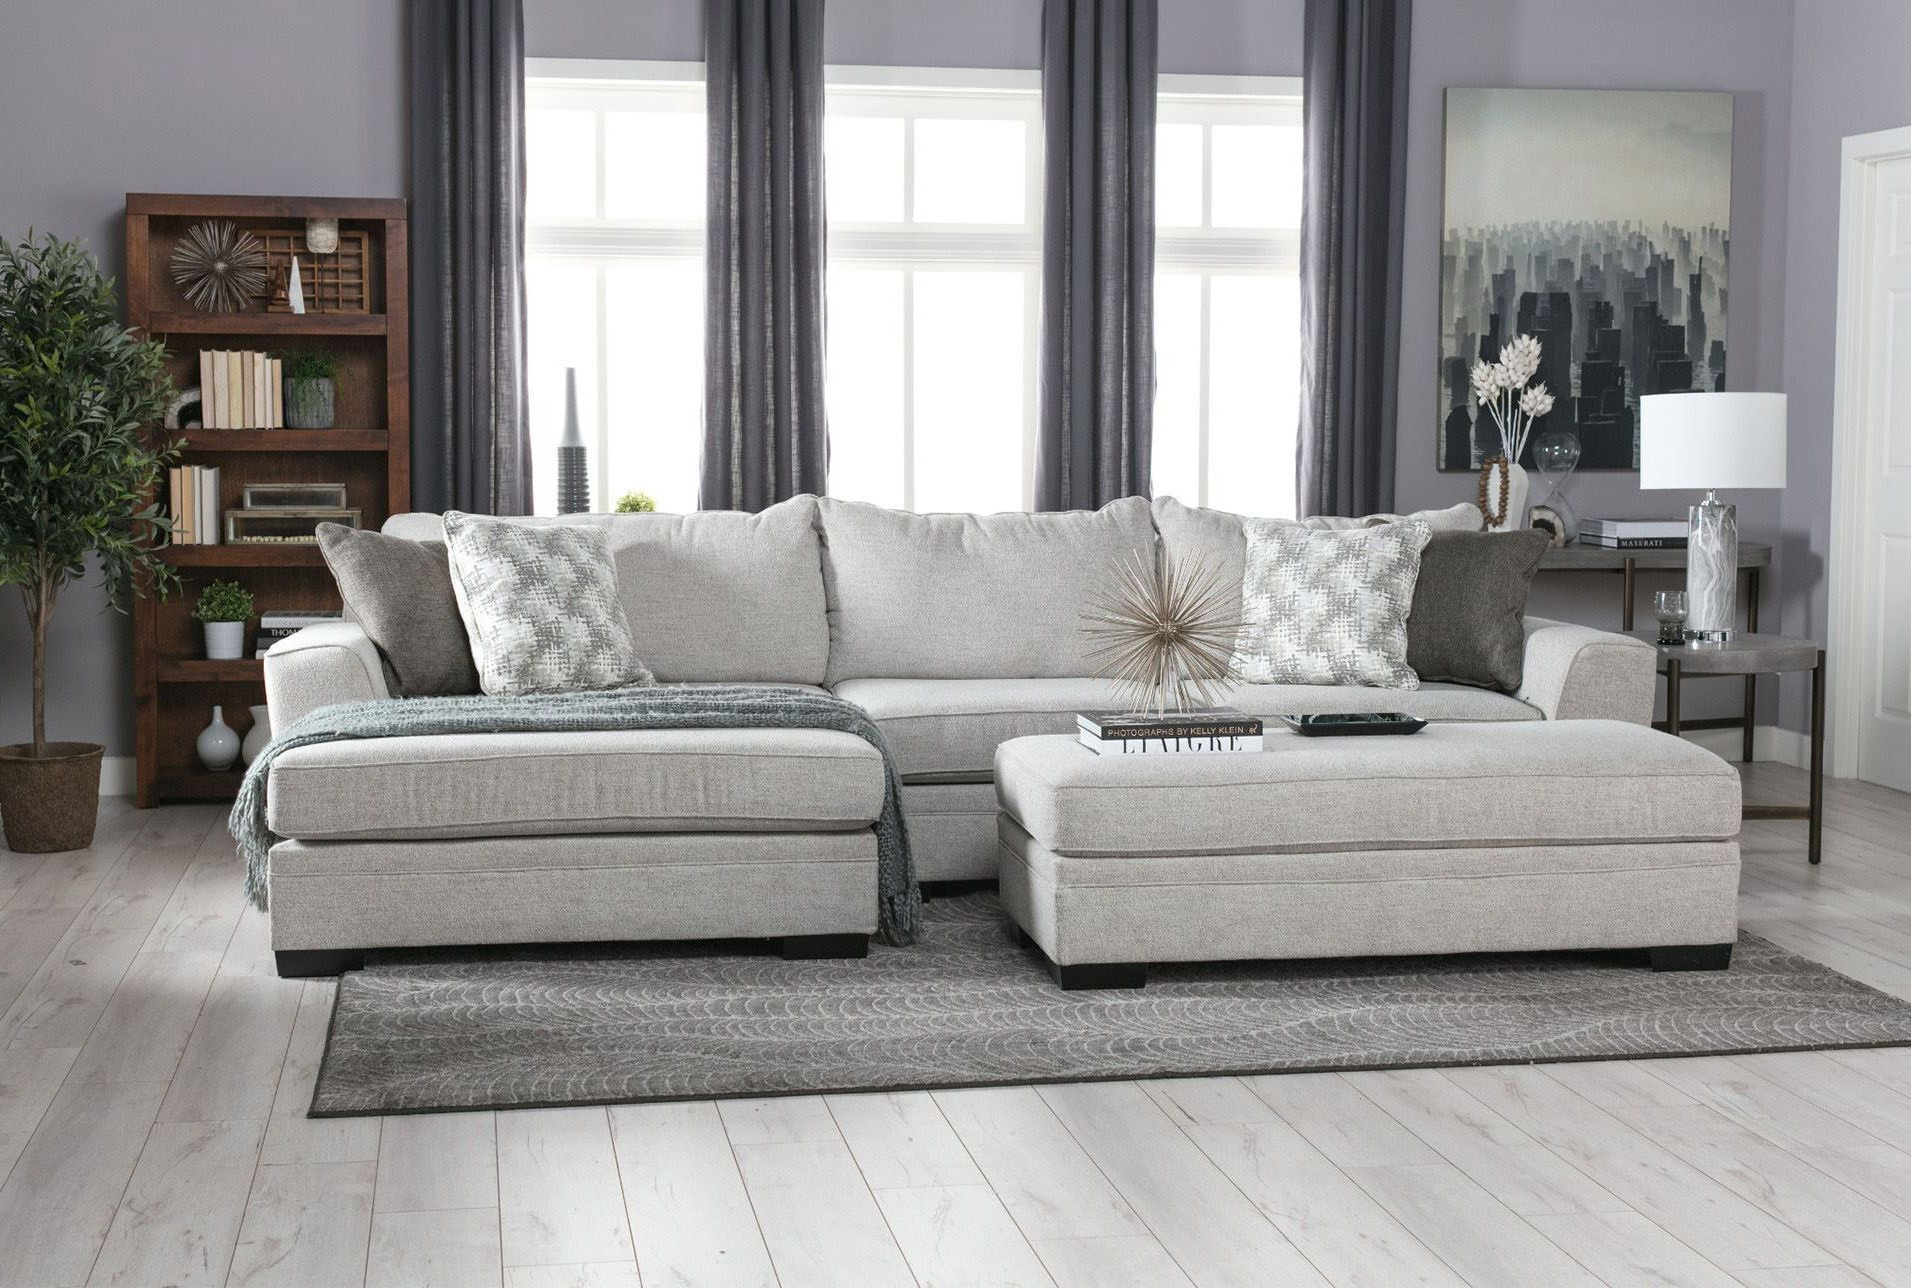 Living Regarding Aquarius Light Grey 2 Piece Sectionals With Raf Chaise (View 11 of 20)